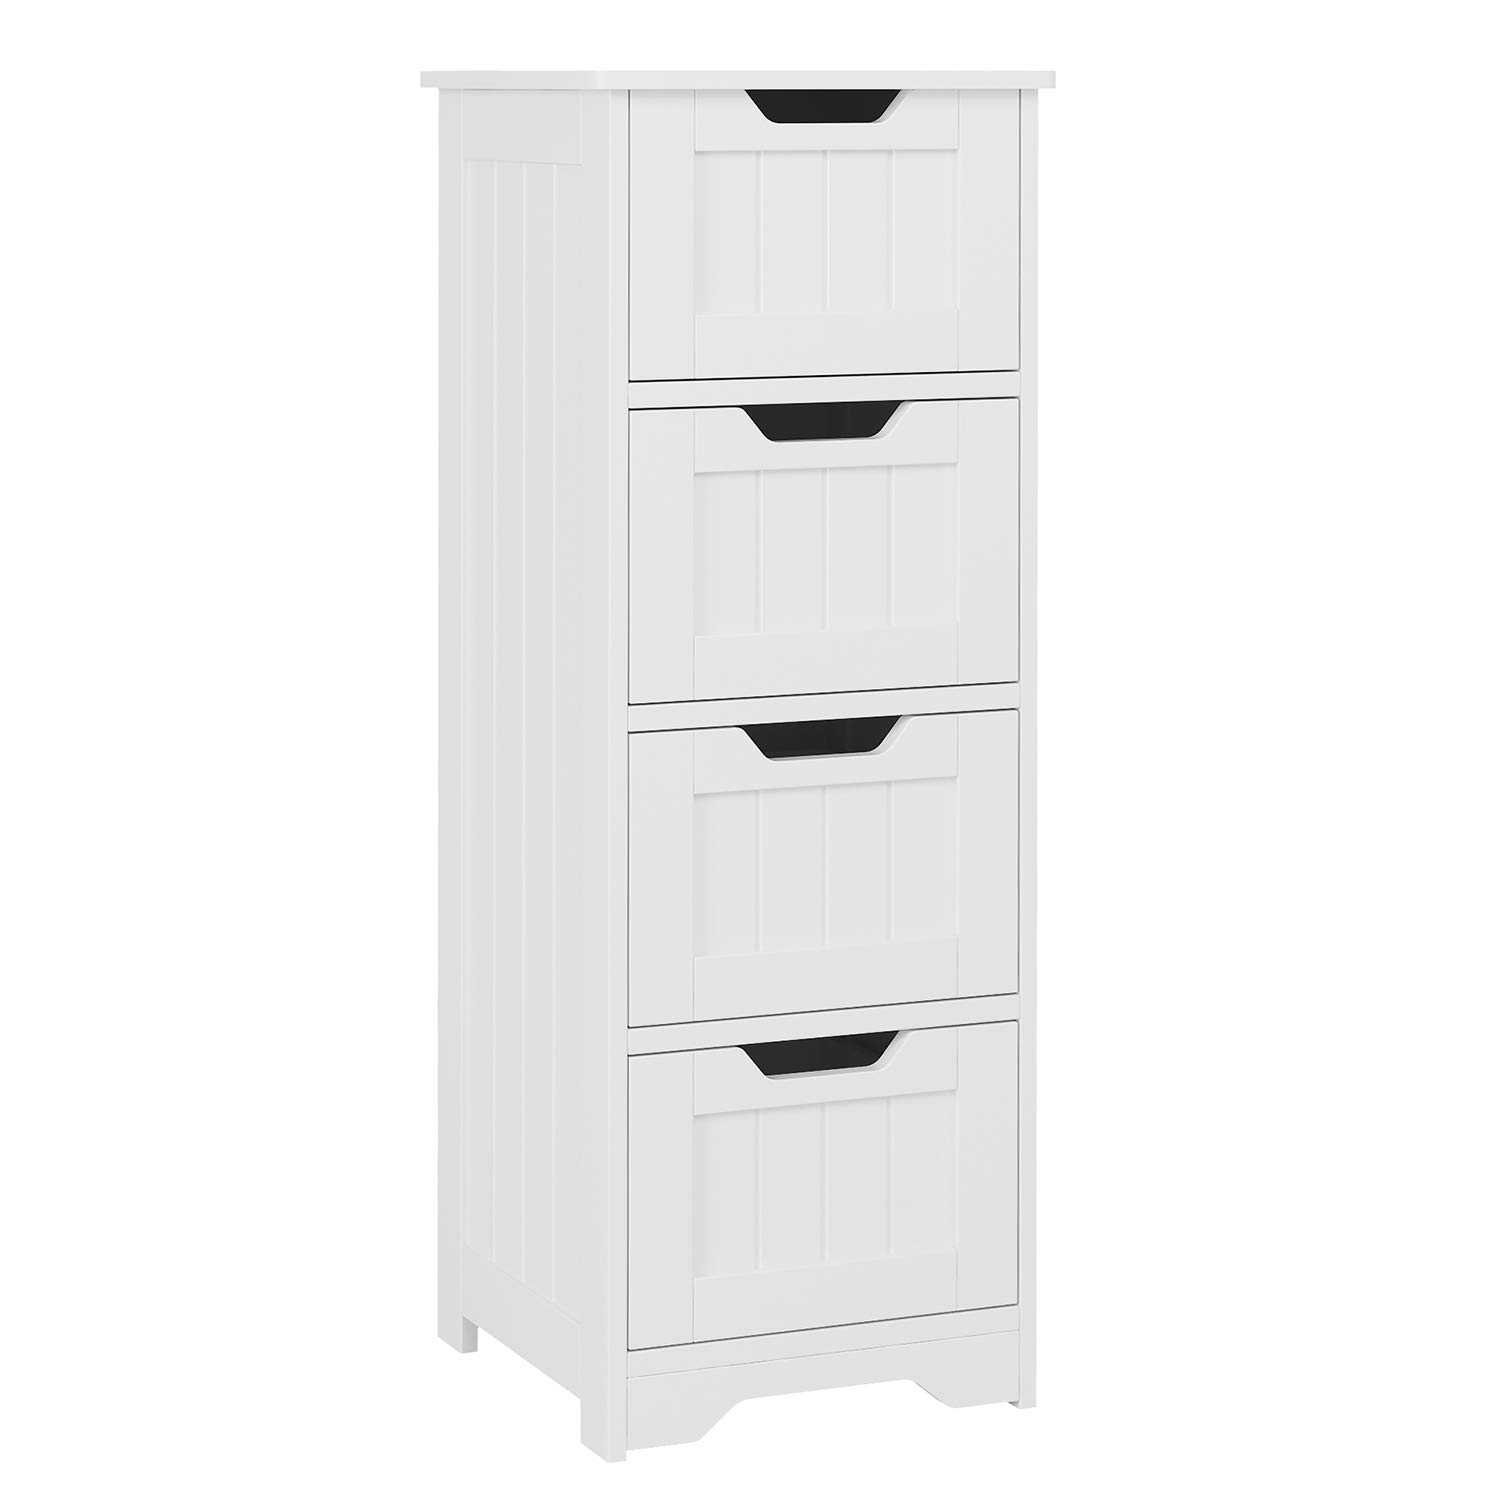 Homfa Bathroom Floor Cabinet, Wooden Free Standing Storage Cabinet Side Organizer Unit with 4 Drawer, White by Homfa